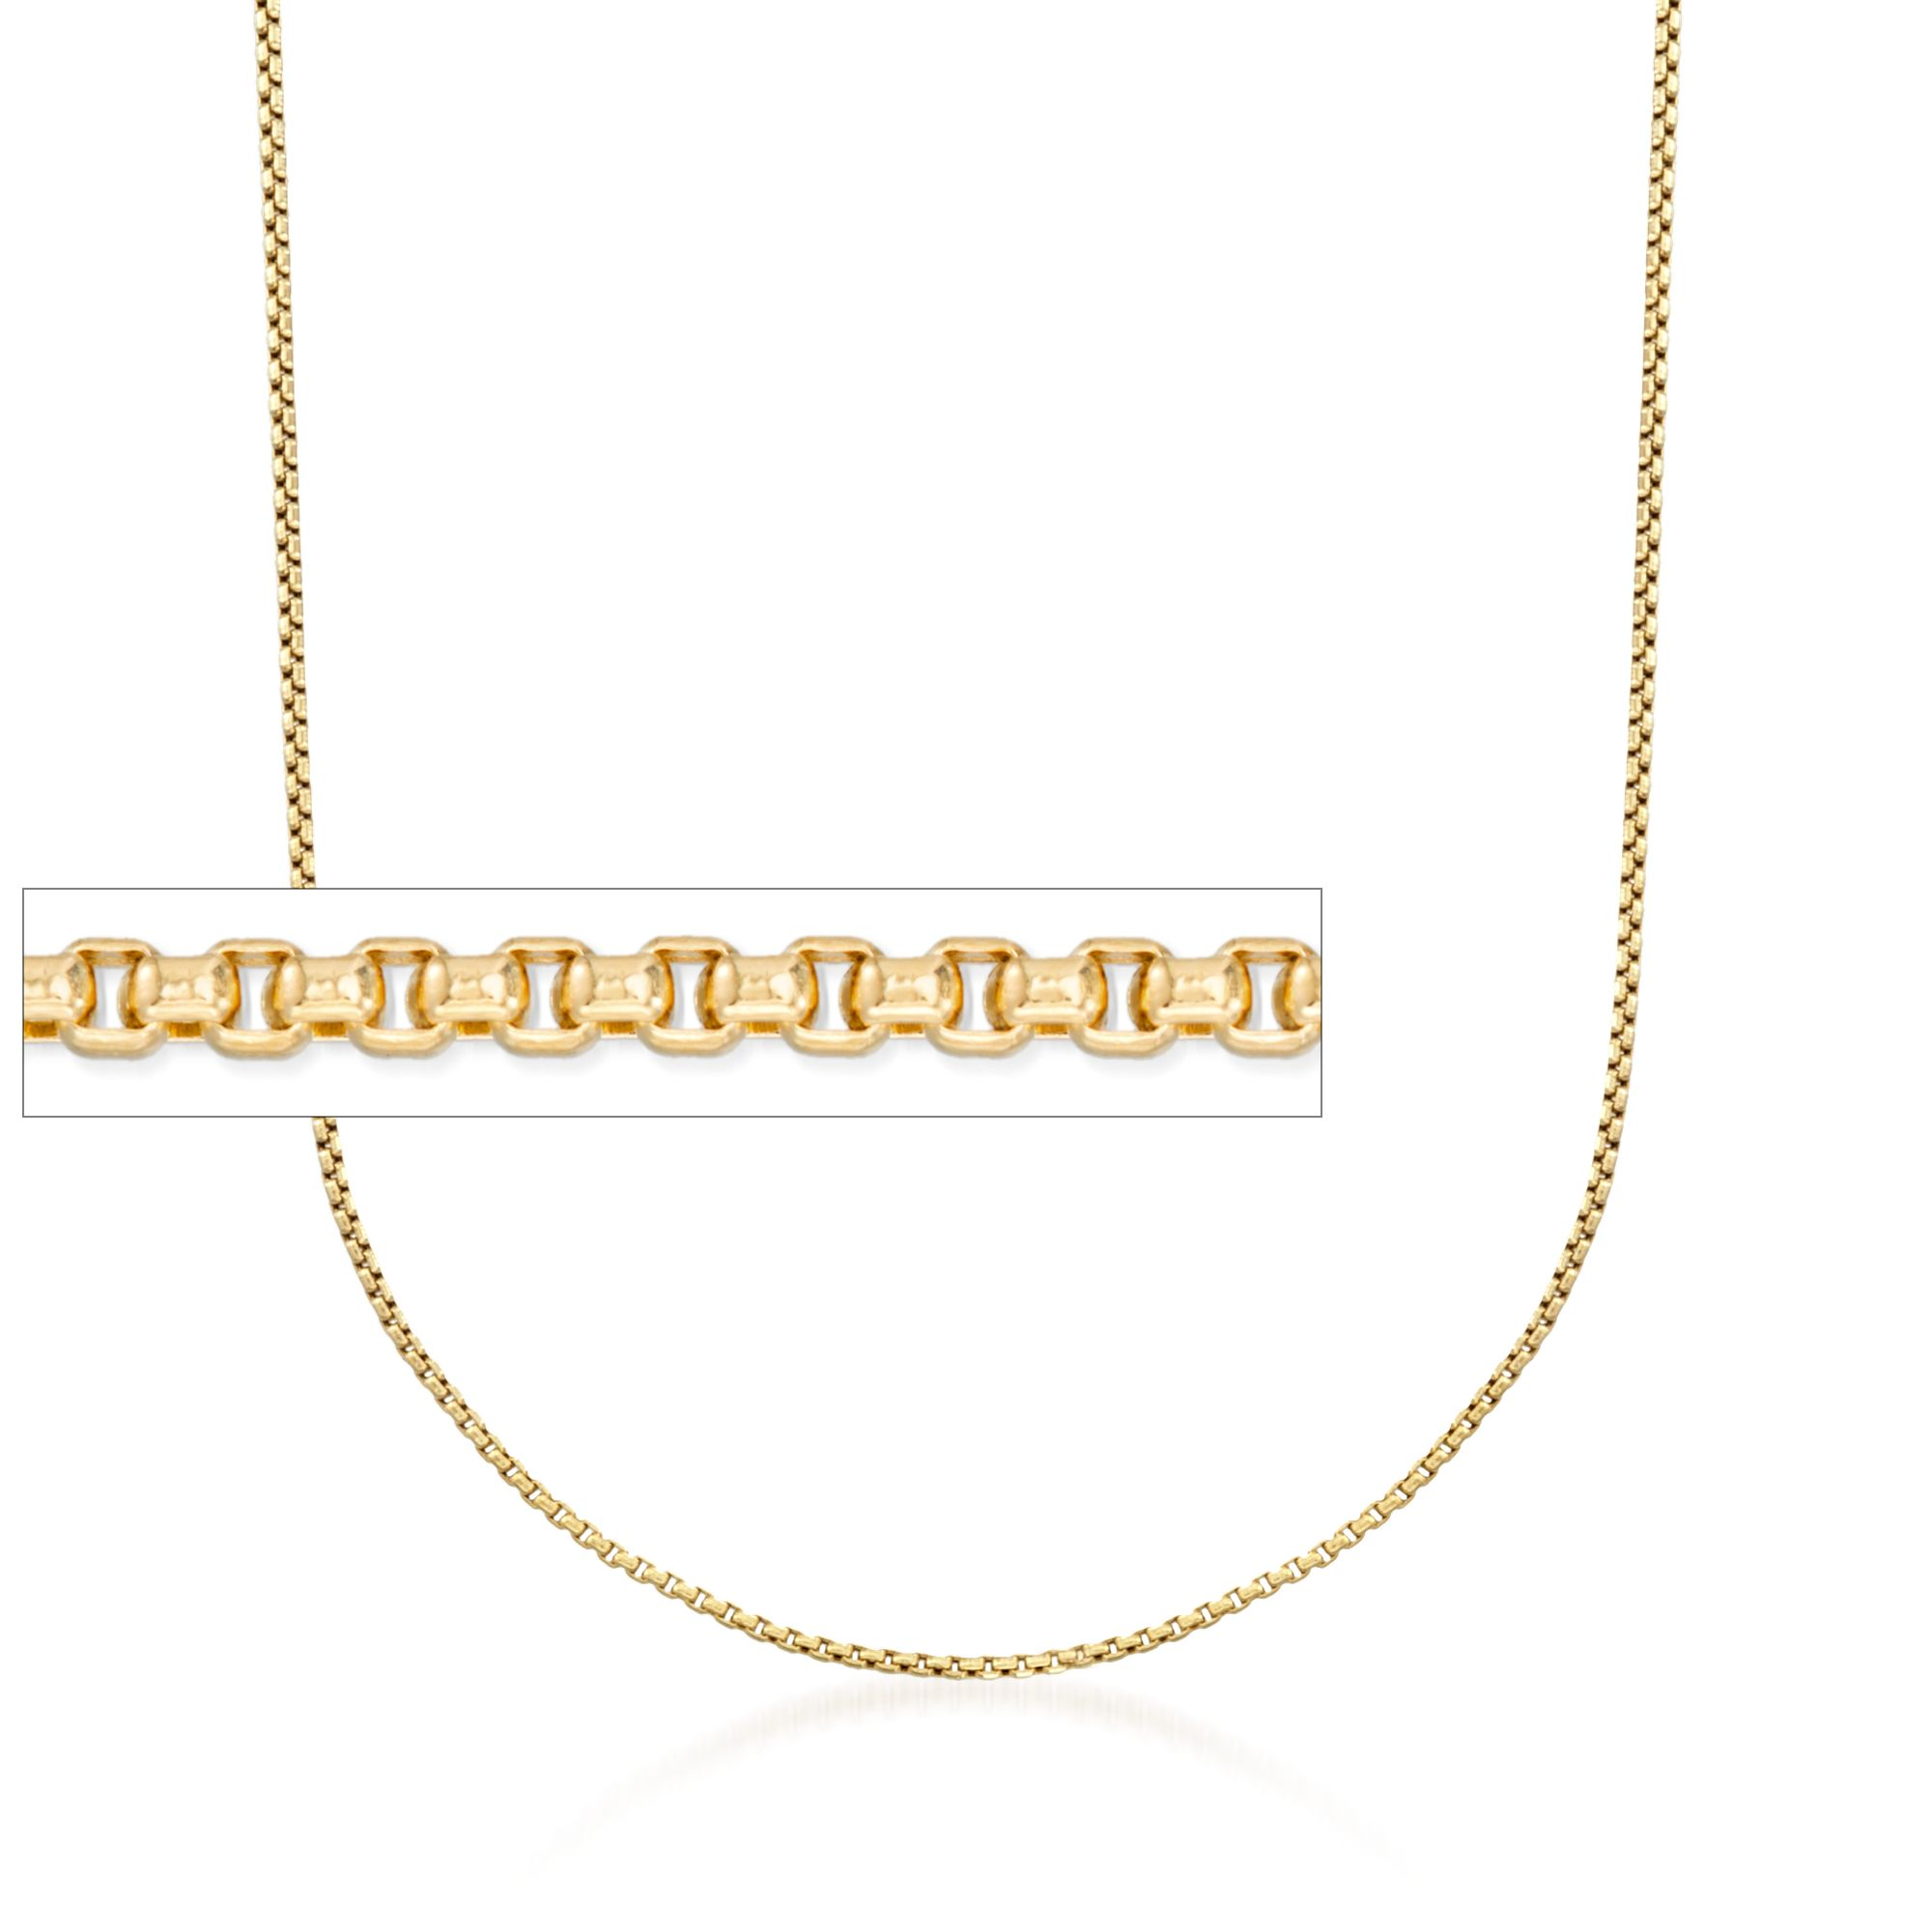 1pc 17.7/'/' ready to wear 18k Gold Filled Square Box Chain Necklace Layering Dainty Box Chain For Jewelry Making with Pendant Charm CH-649